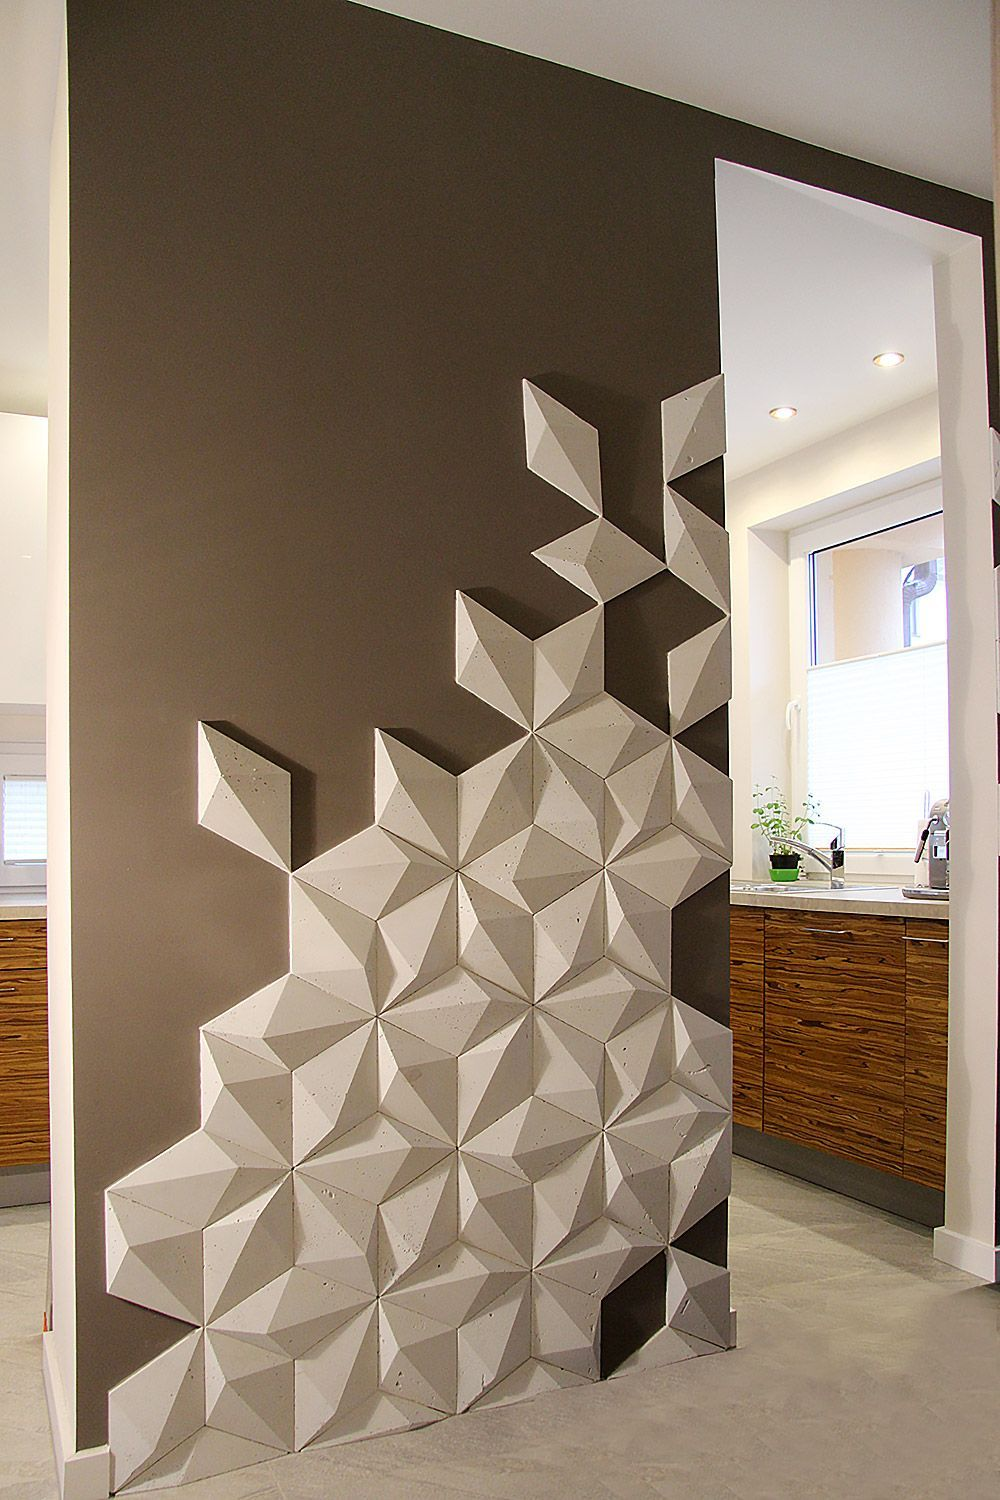 Wall highlight texture on or paper also pin by arturs kenebuks majai pinterest papers walls and rh